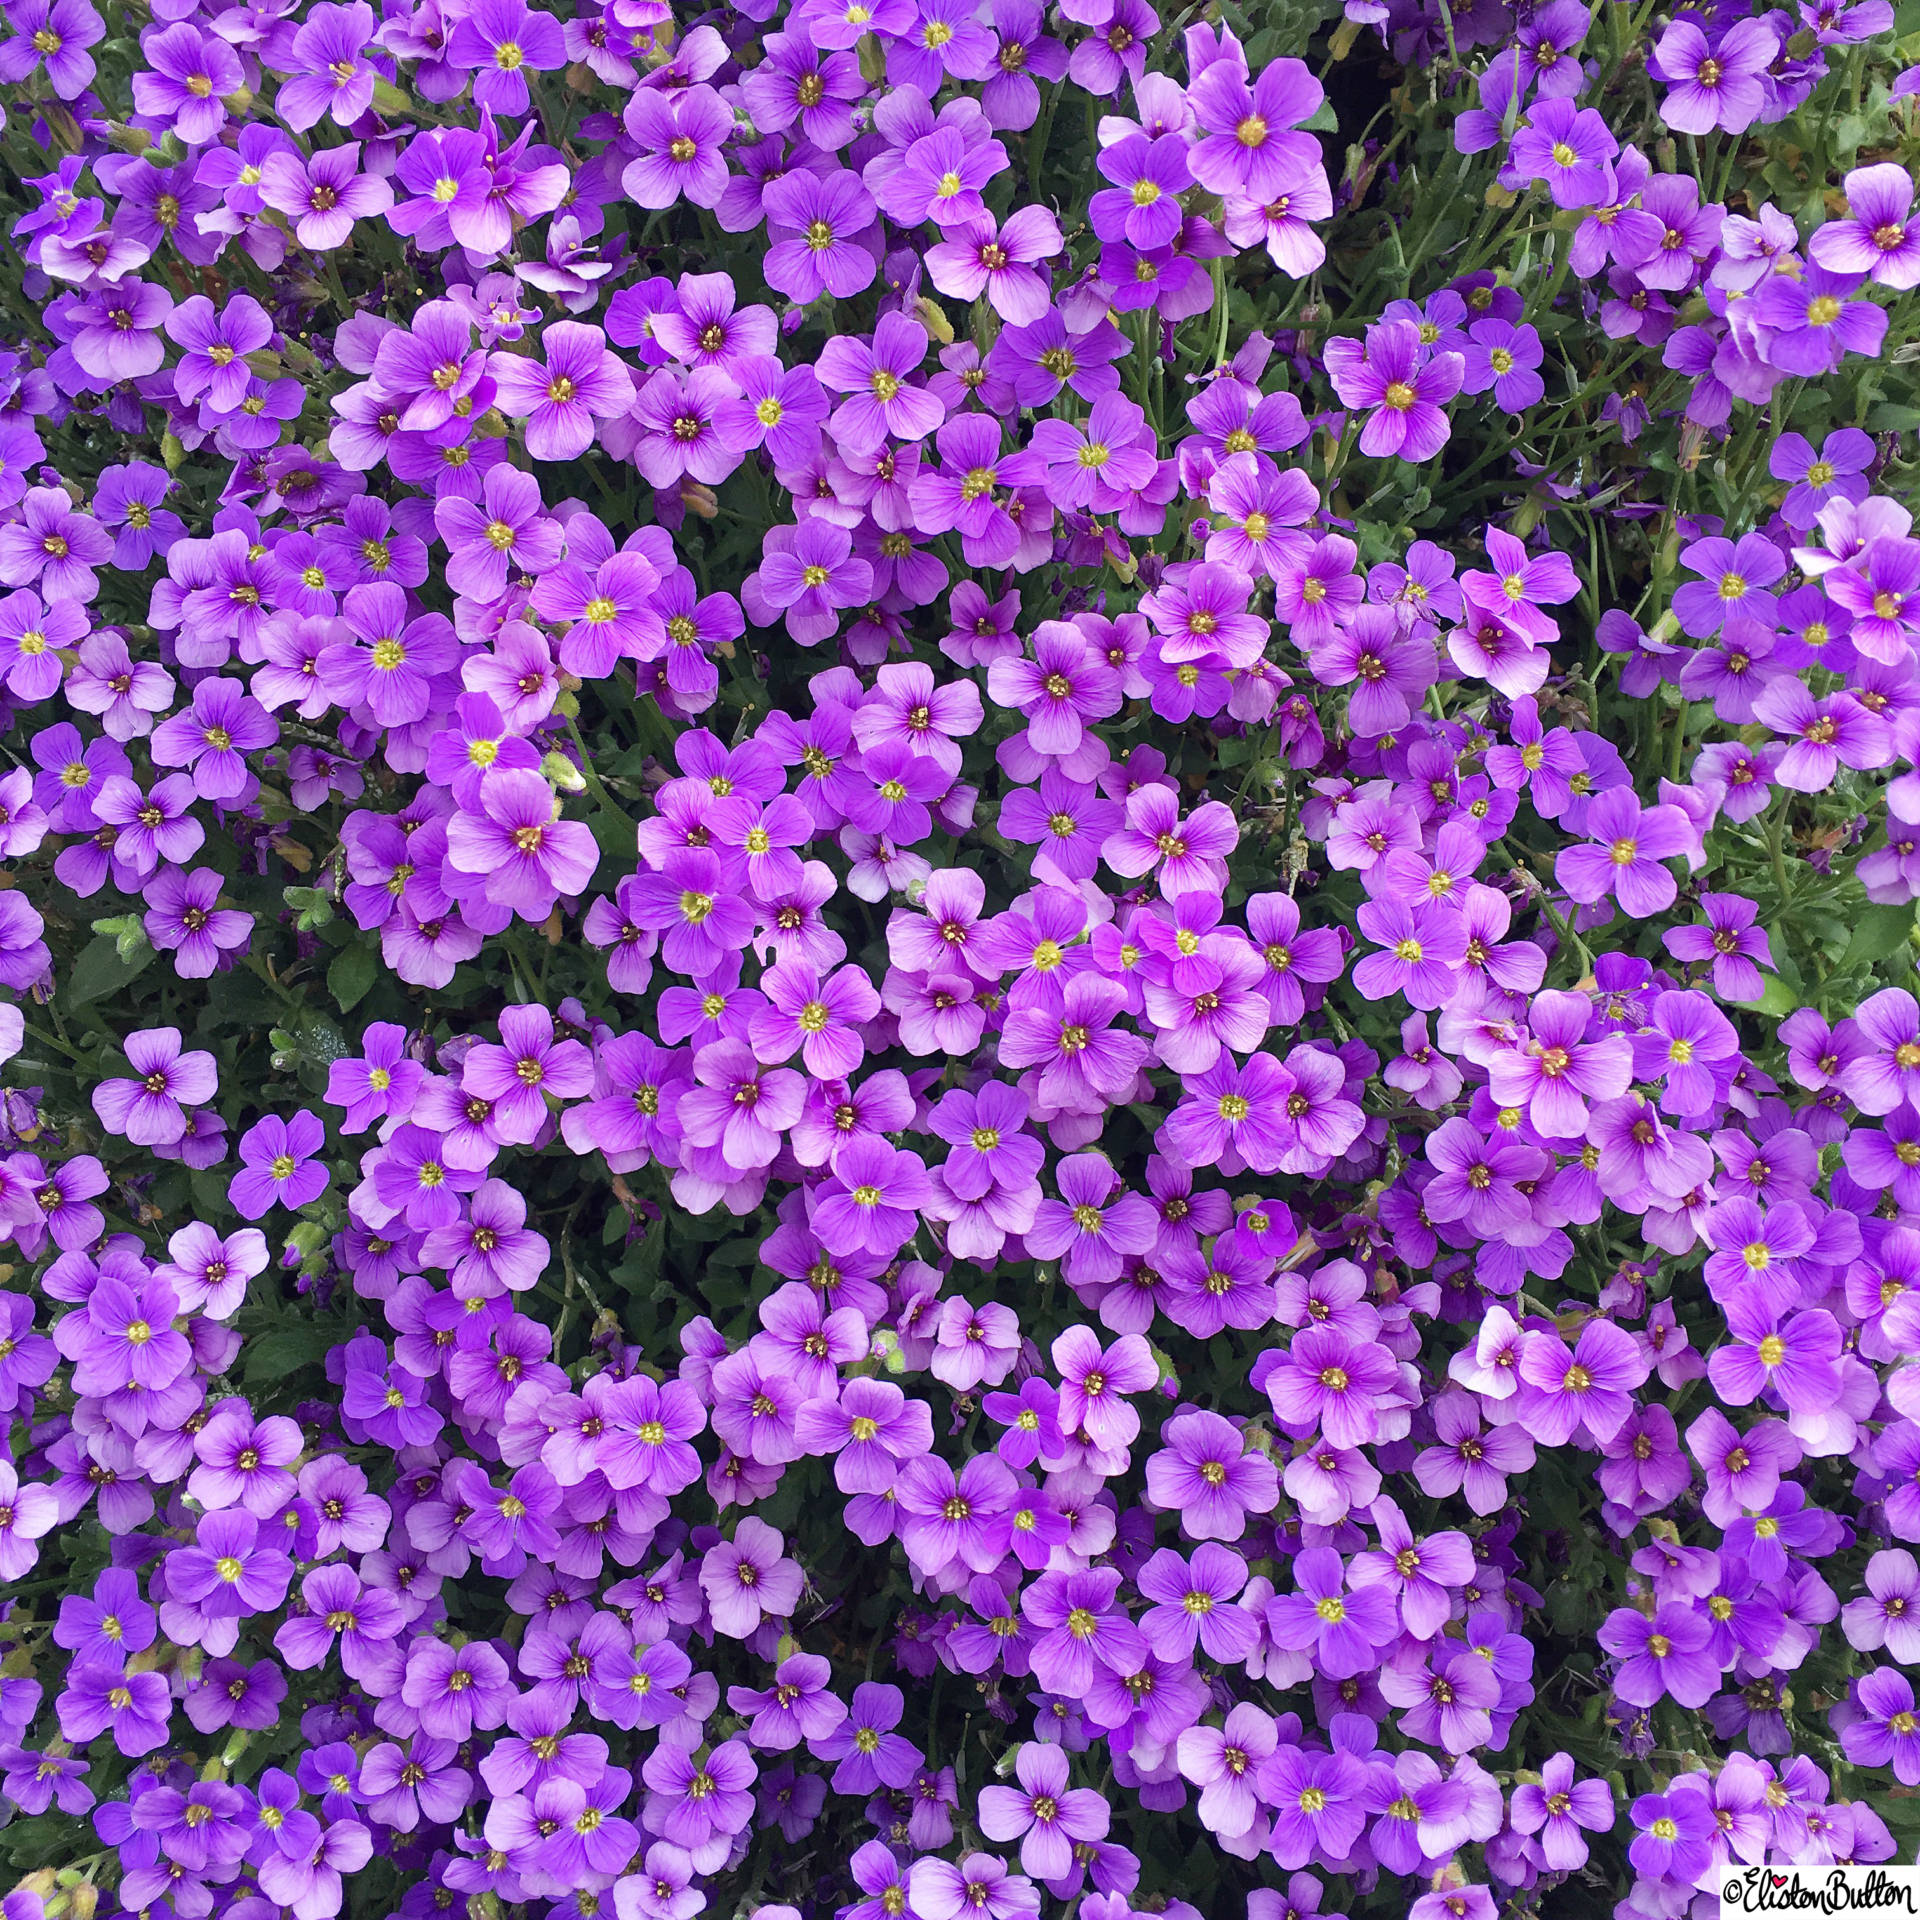 Day 02 - Routine - Purple Aubrieta - Photo-a-Day – May 2016 at www.elistonbutton.com - Eliston Button - That Crafty Kid – Art, Design, Craft & Adventure.